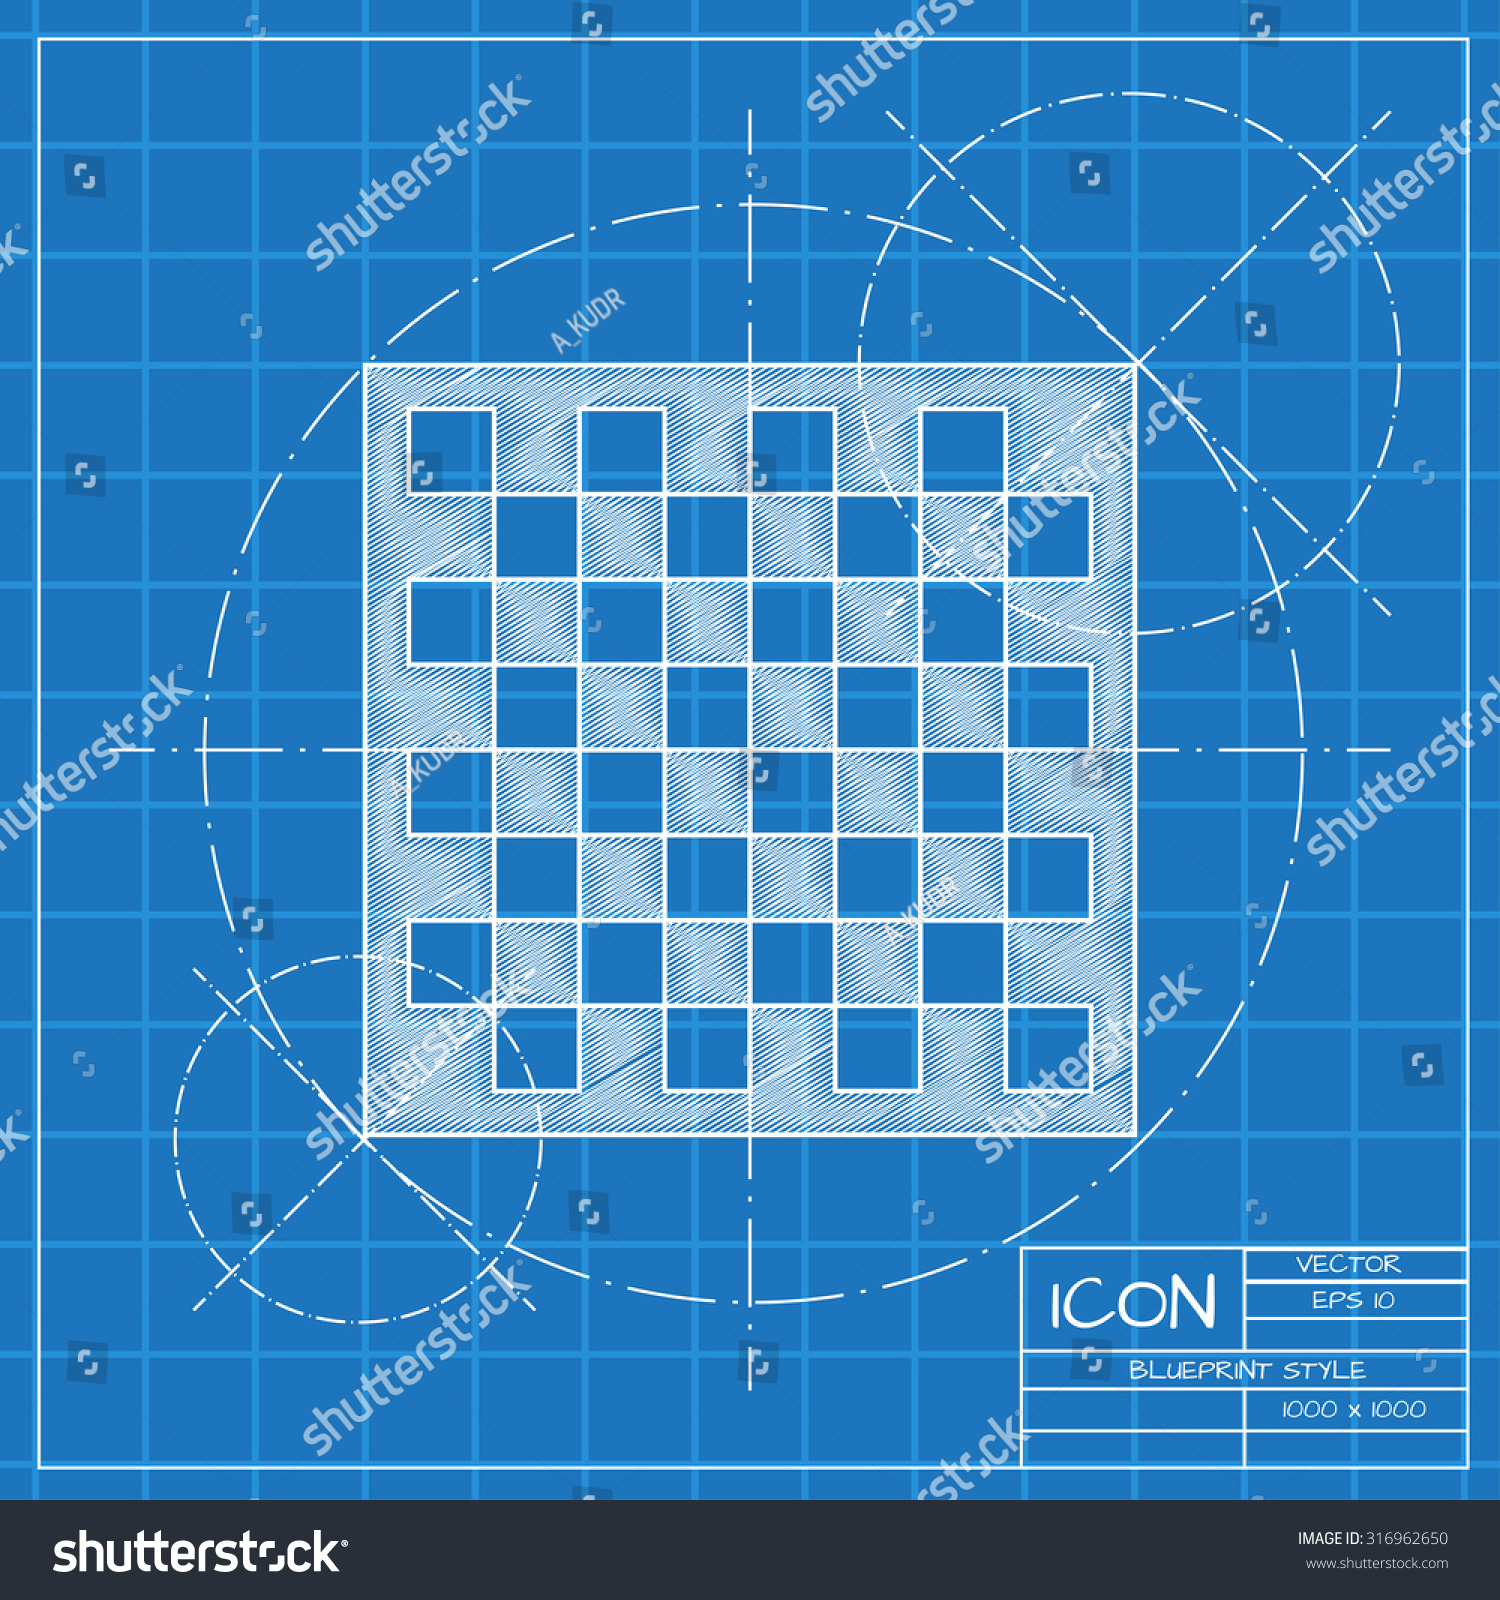 Vector blueprint checkers board icon on stock vector 316962650 vector blueprint checkers board icon on engineer or architect background malvernweather Image collections